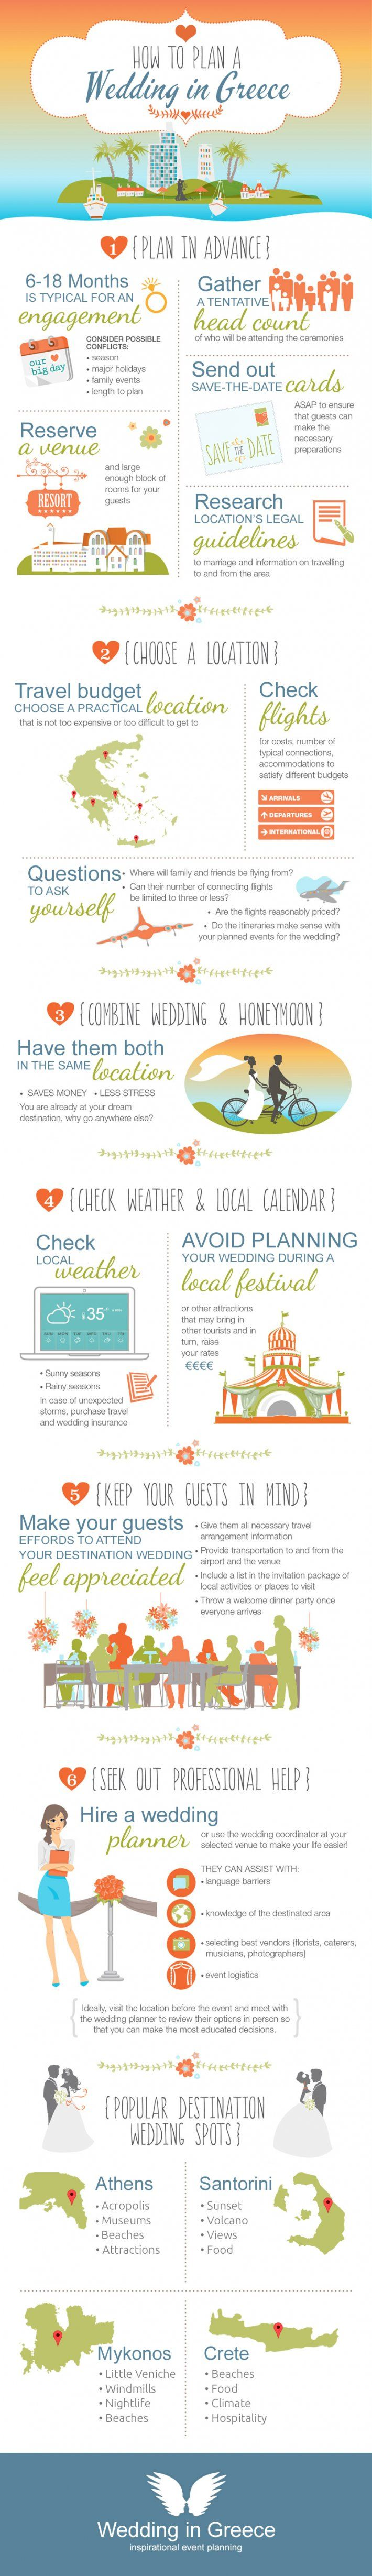 How to plan a wedding in Greece - infographic - https://weddingingreece.com/how-to-plan-a-wedding-in-greece-infographic/